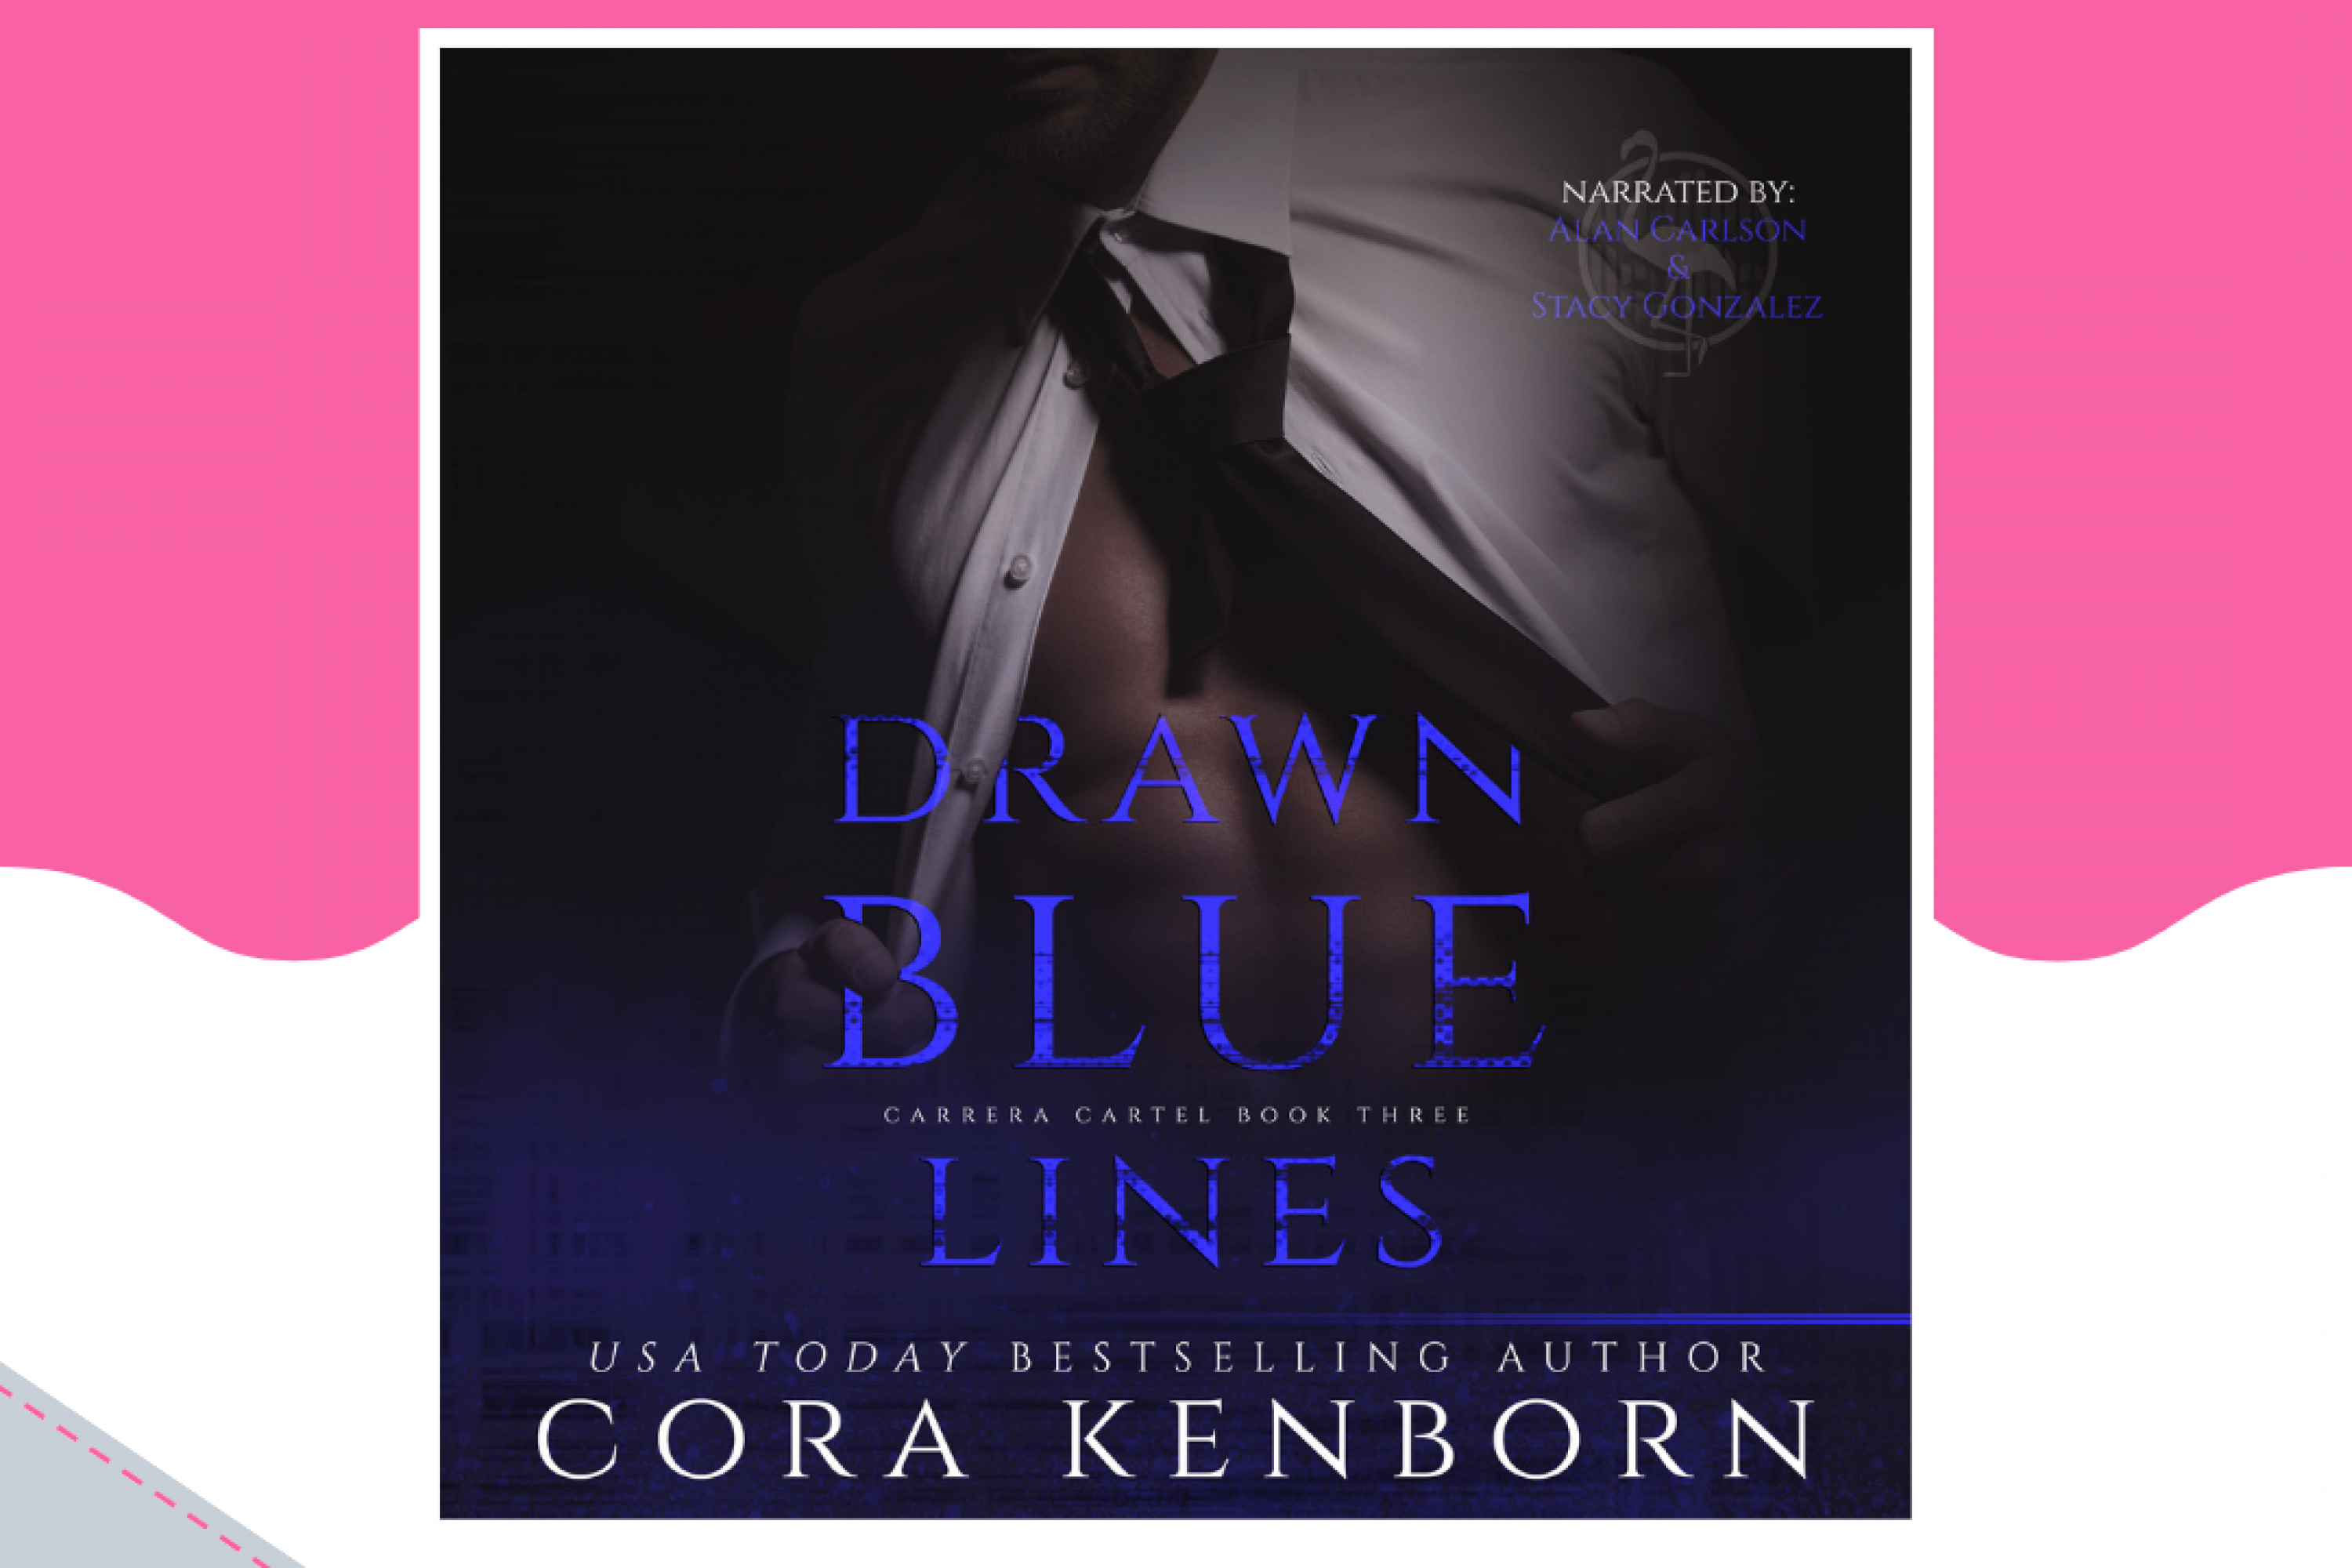 Release Blitz: Drawn Blue Lines by Cora Kenborn